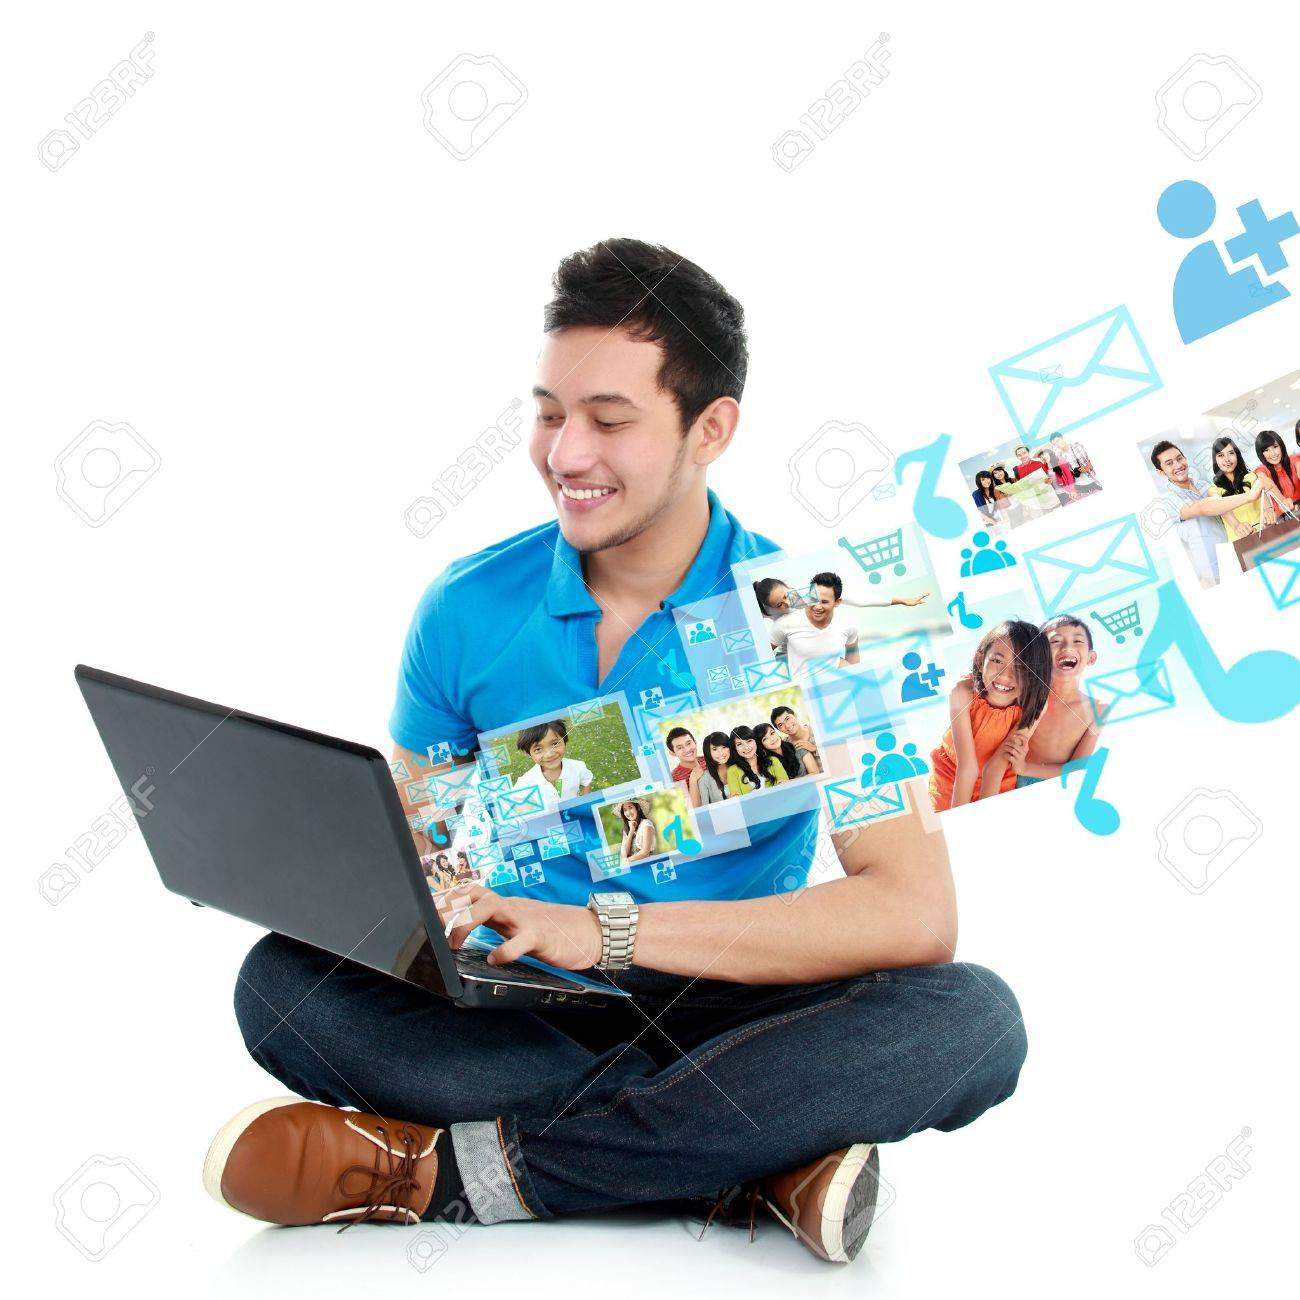 portrait of young asian man study using laptop isolated over white background Stock Photo - 20599539